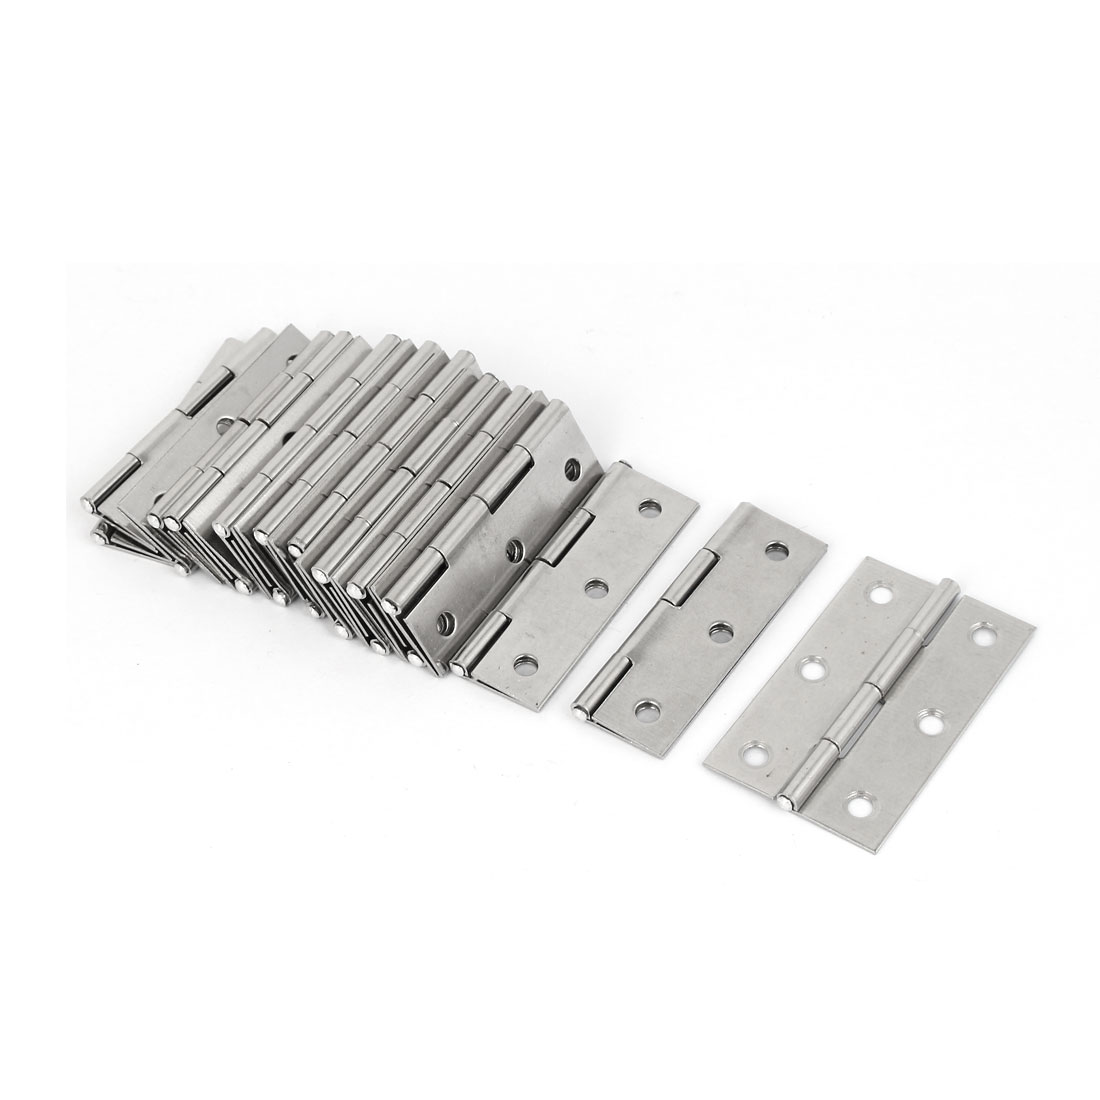 UXCELL Cupboard Cabinet Stainless Steel Door Hinges 55Mm Long 10Pcs(China (Mainland))